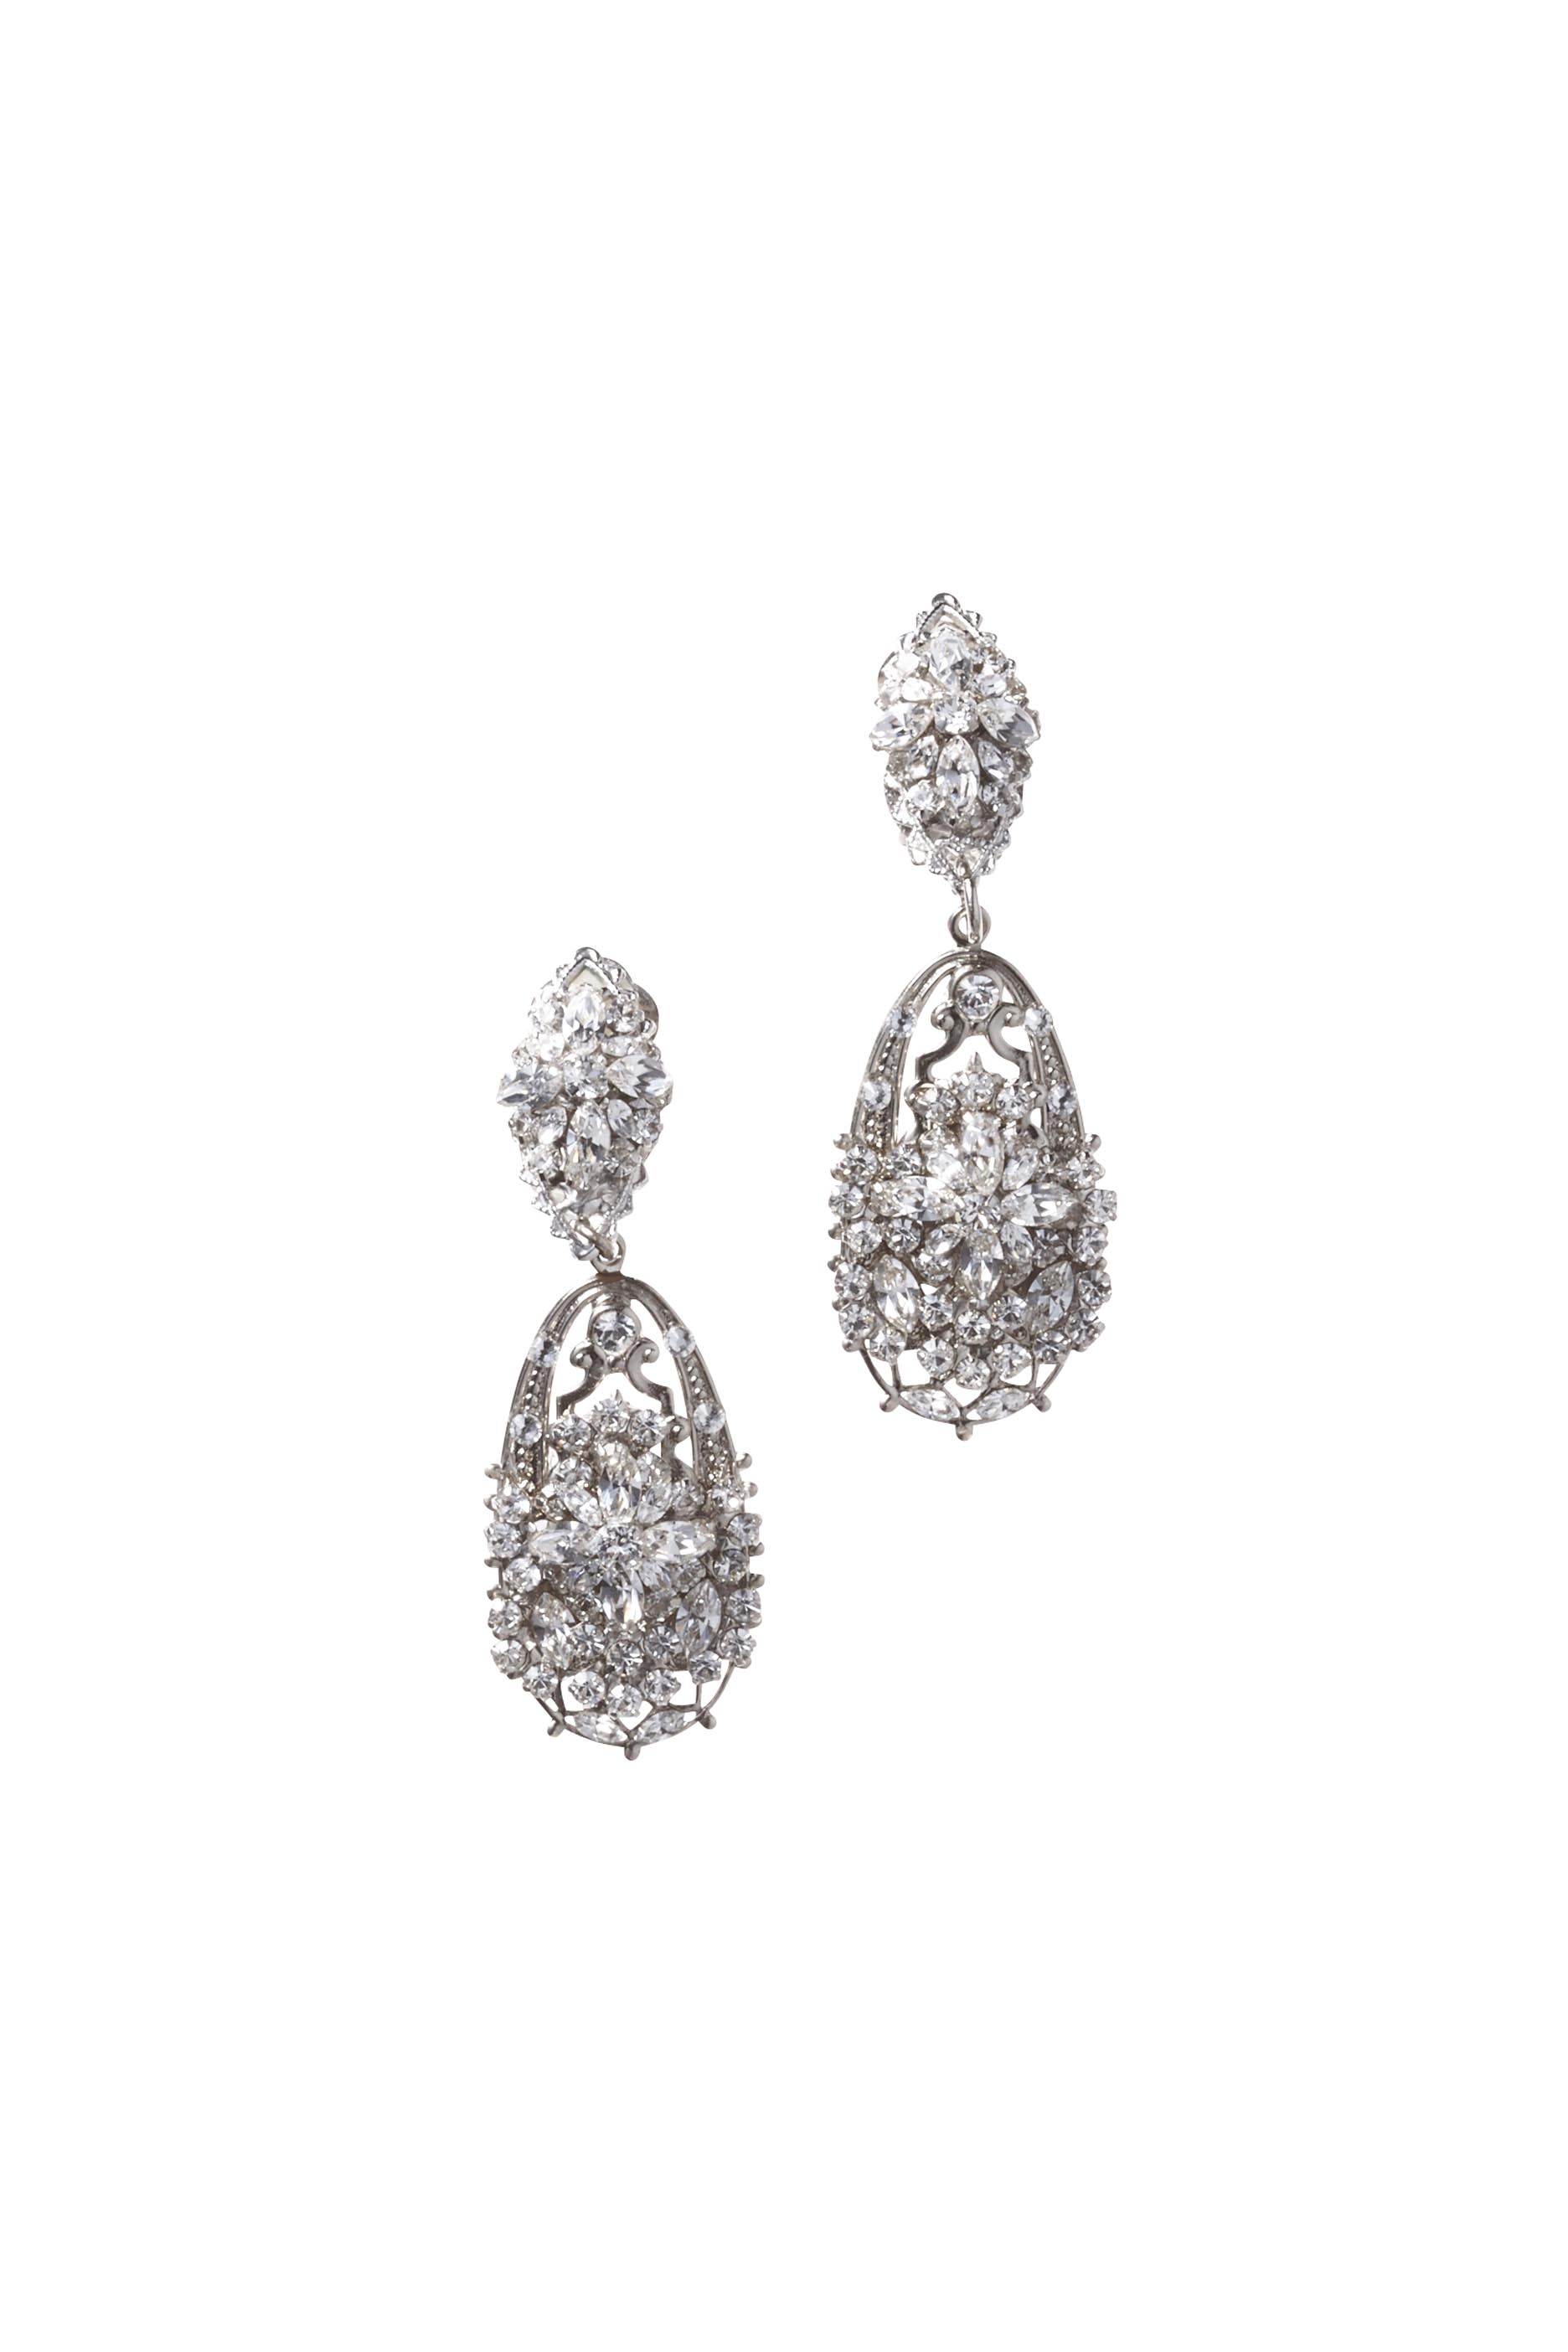 [RENTAL][Primo Earrings]by MariaElena(参考価格¥48,600)